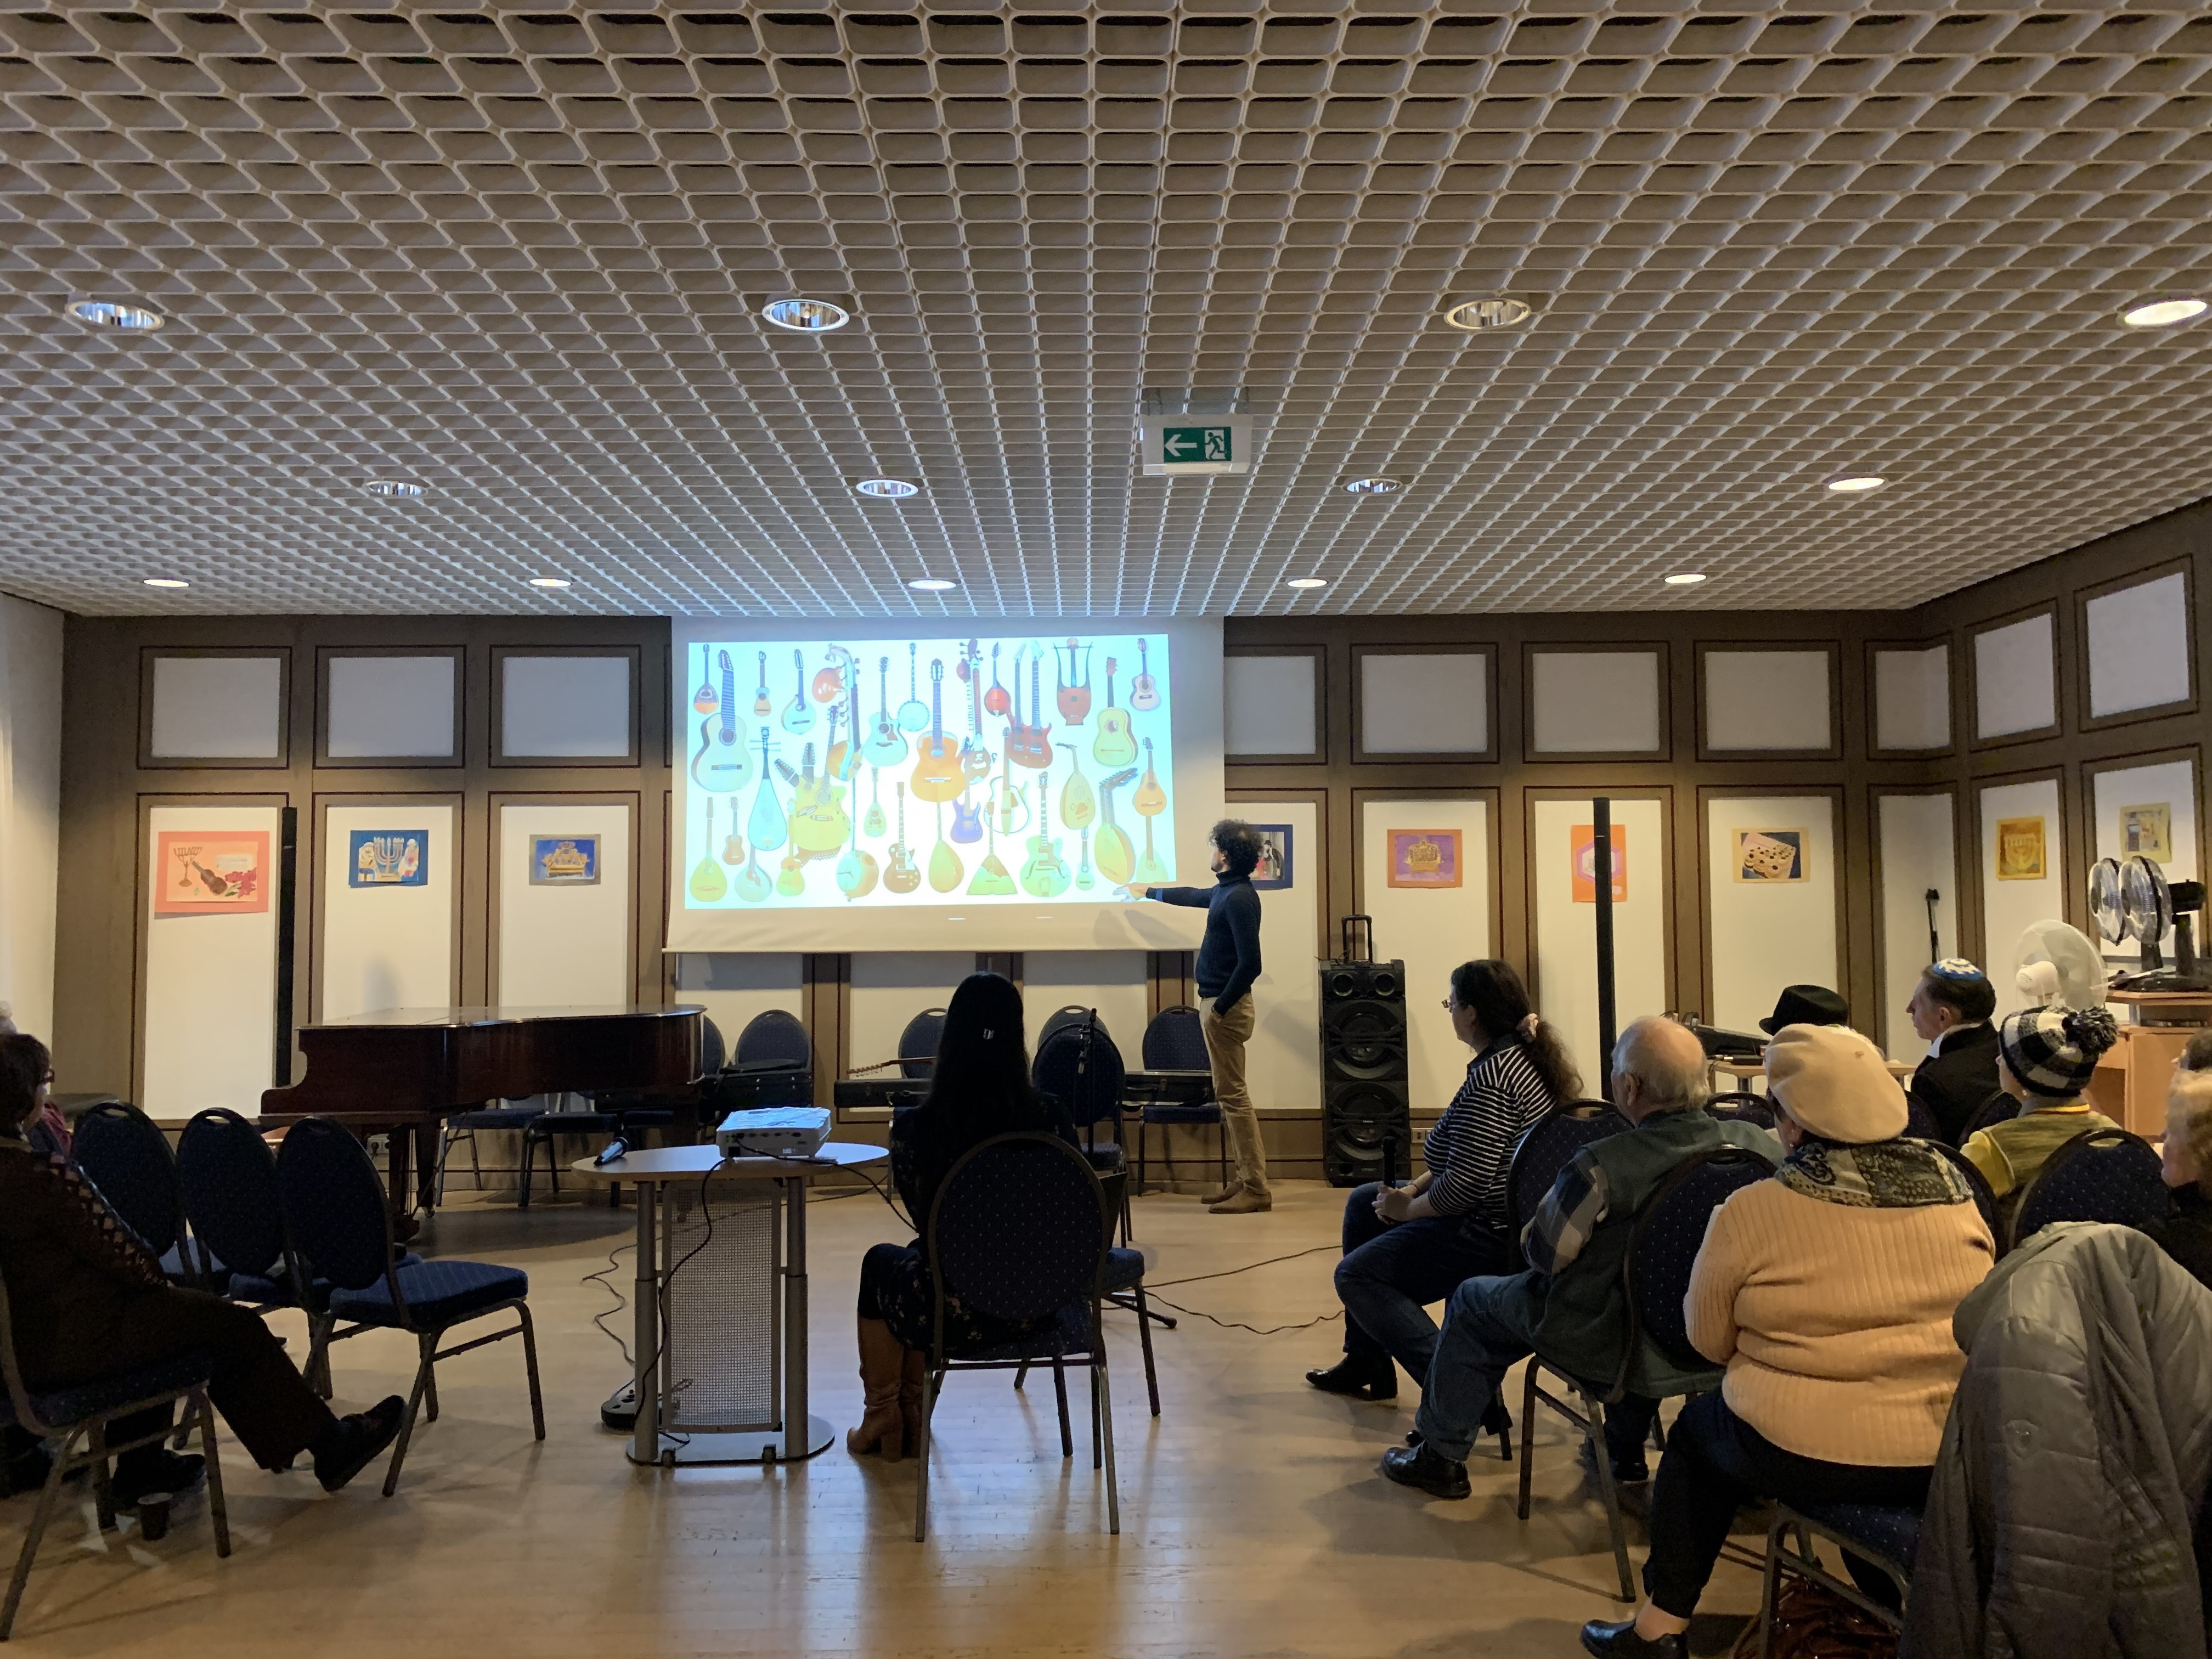 01.12.2019 – Presentation of the project for the Jewish community Baden-Baden